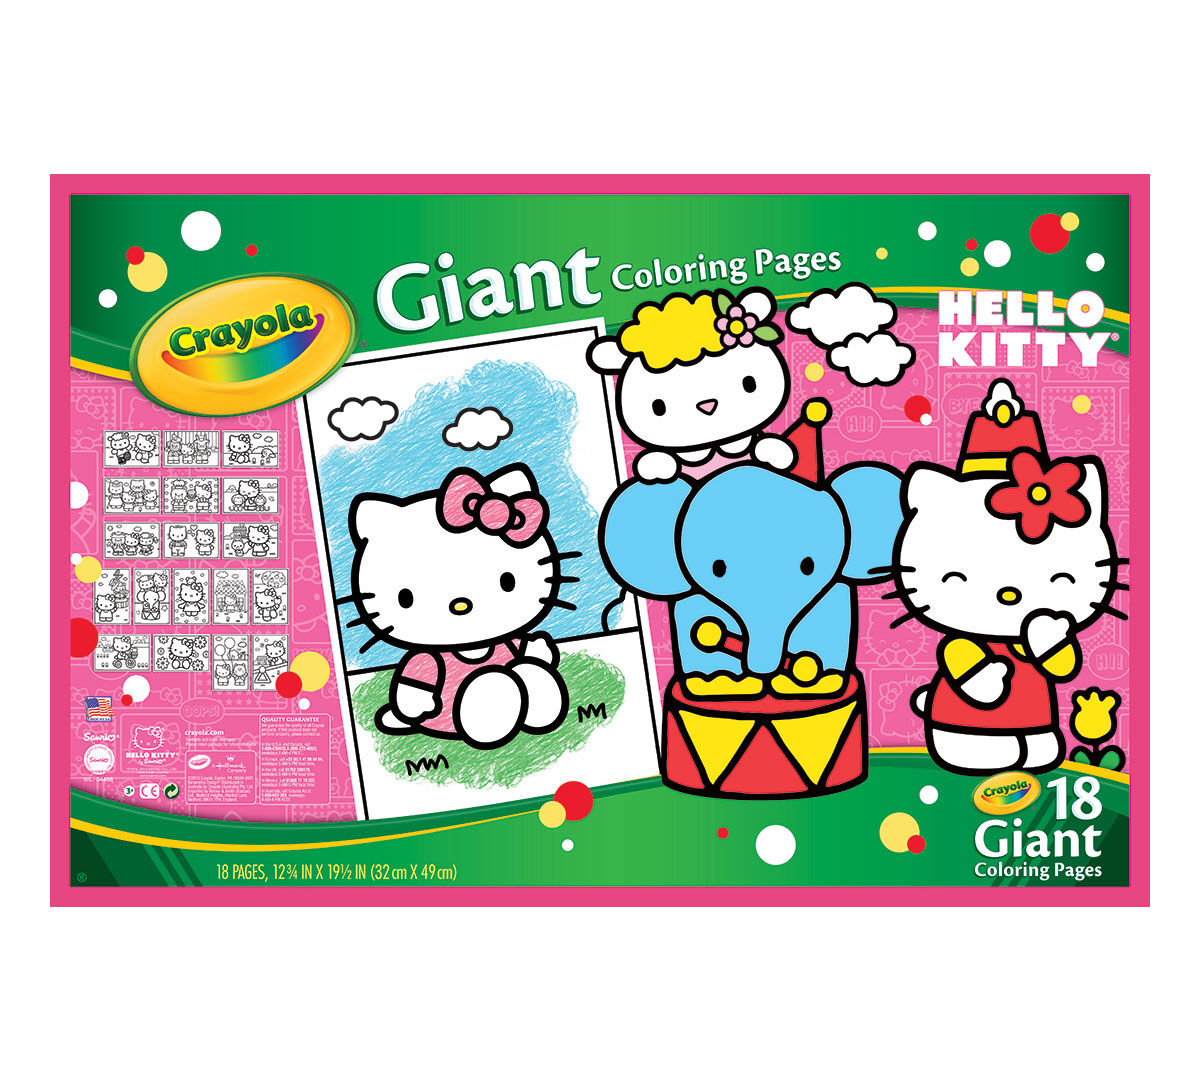 Crayola Giant Coloring Pages - Hello Kitty 04-0179 | eBay